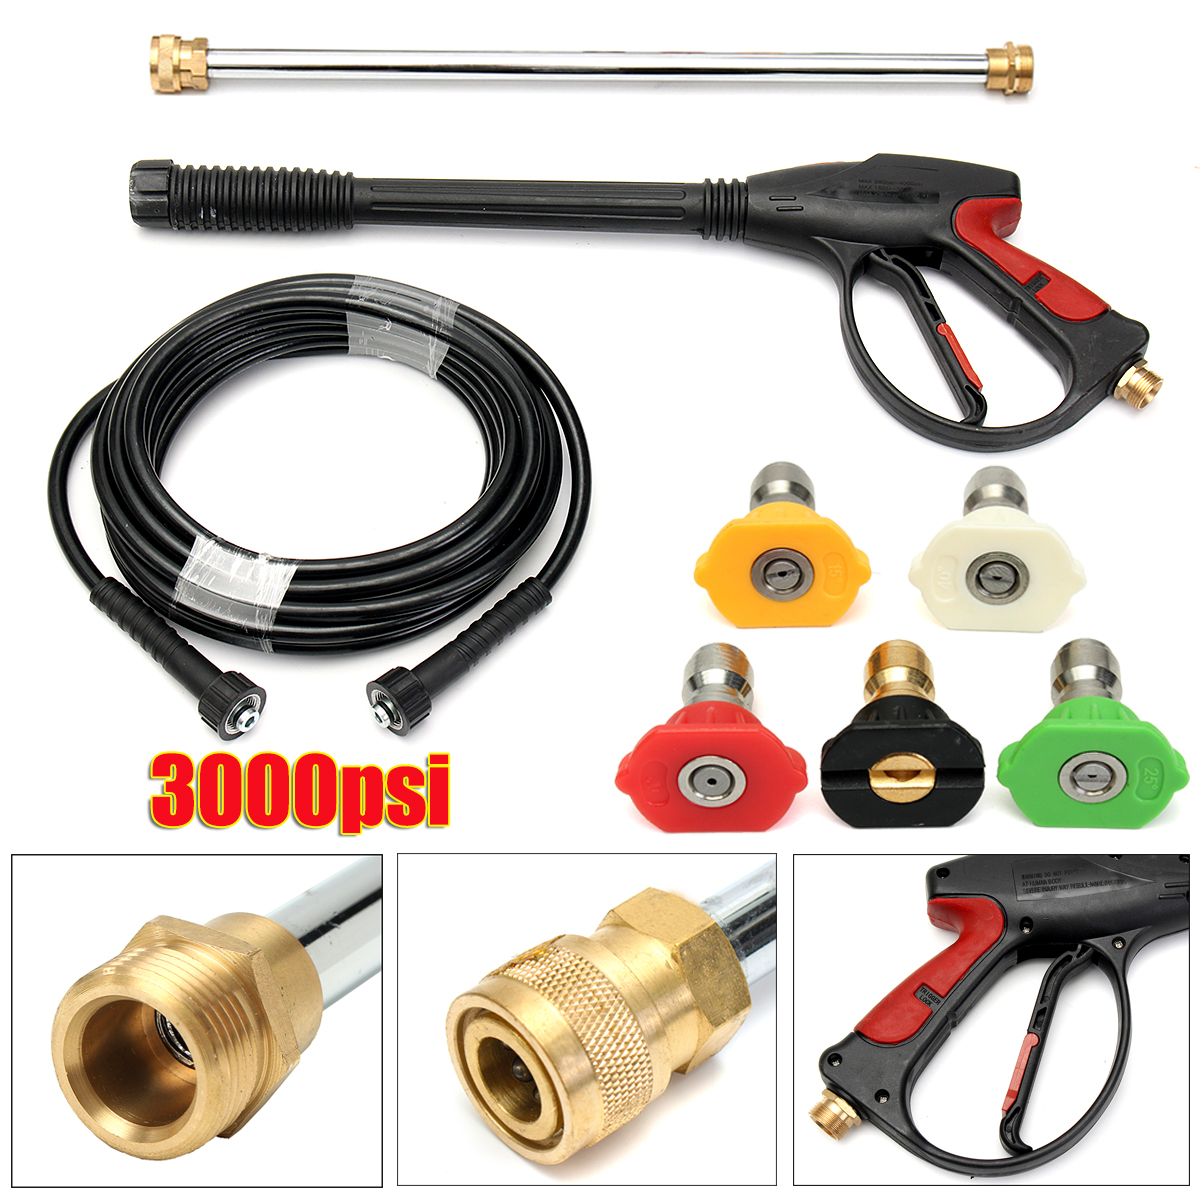 Pressure Washer Accessories Kit Metal Extension Wand with Spray Nozzle Tips